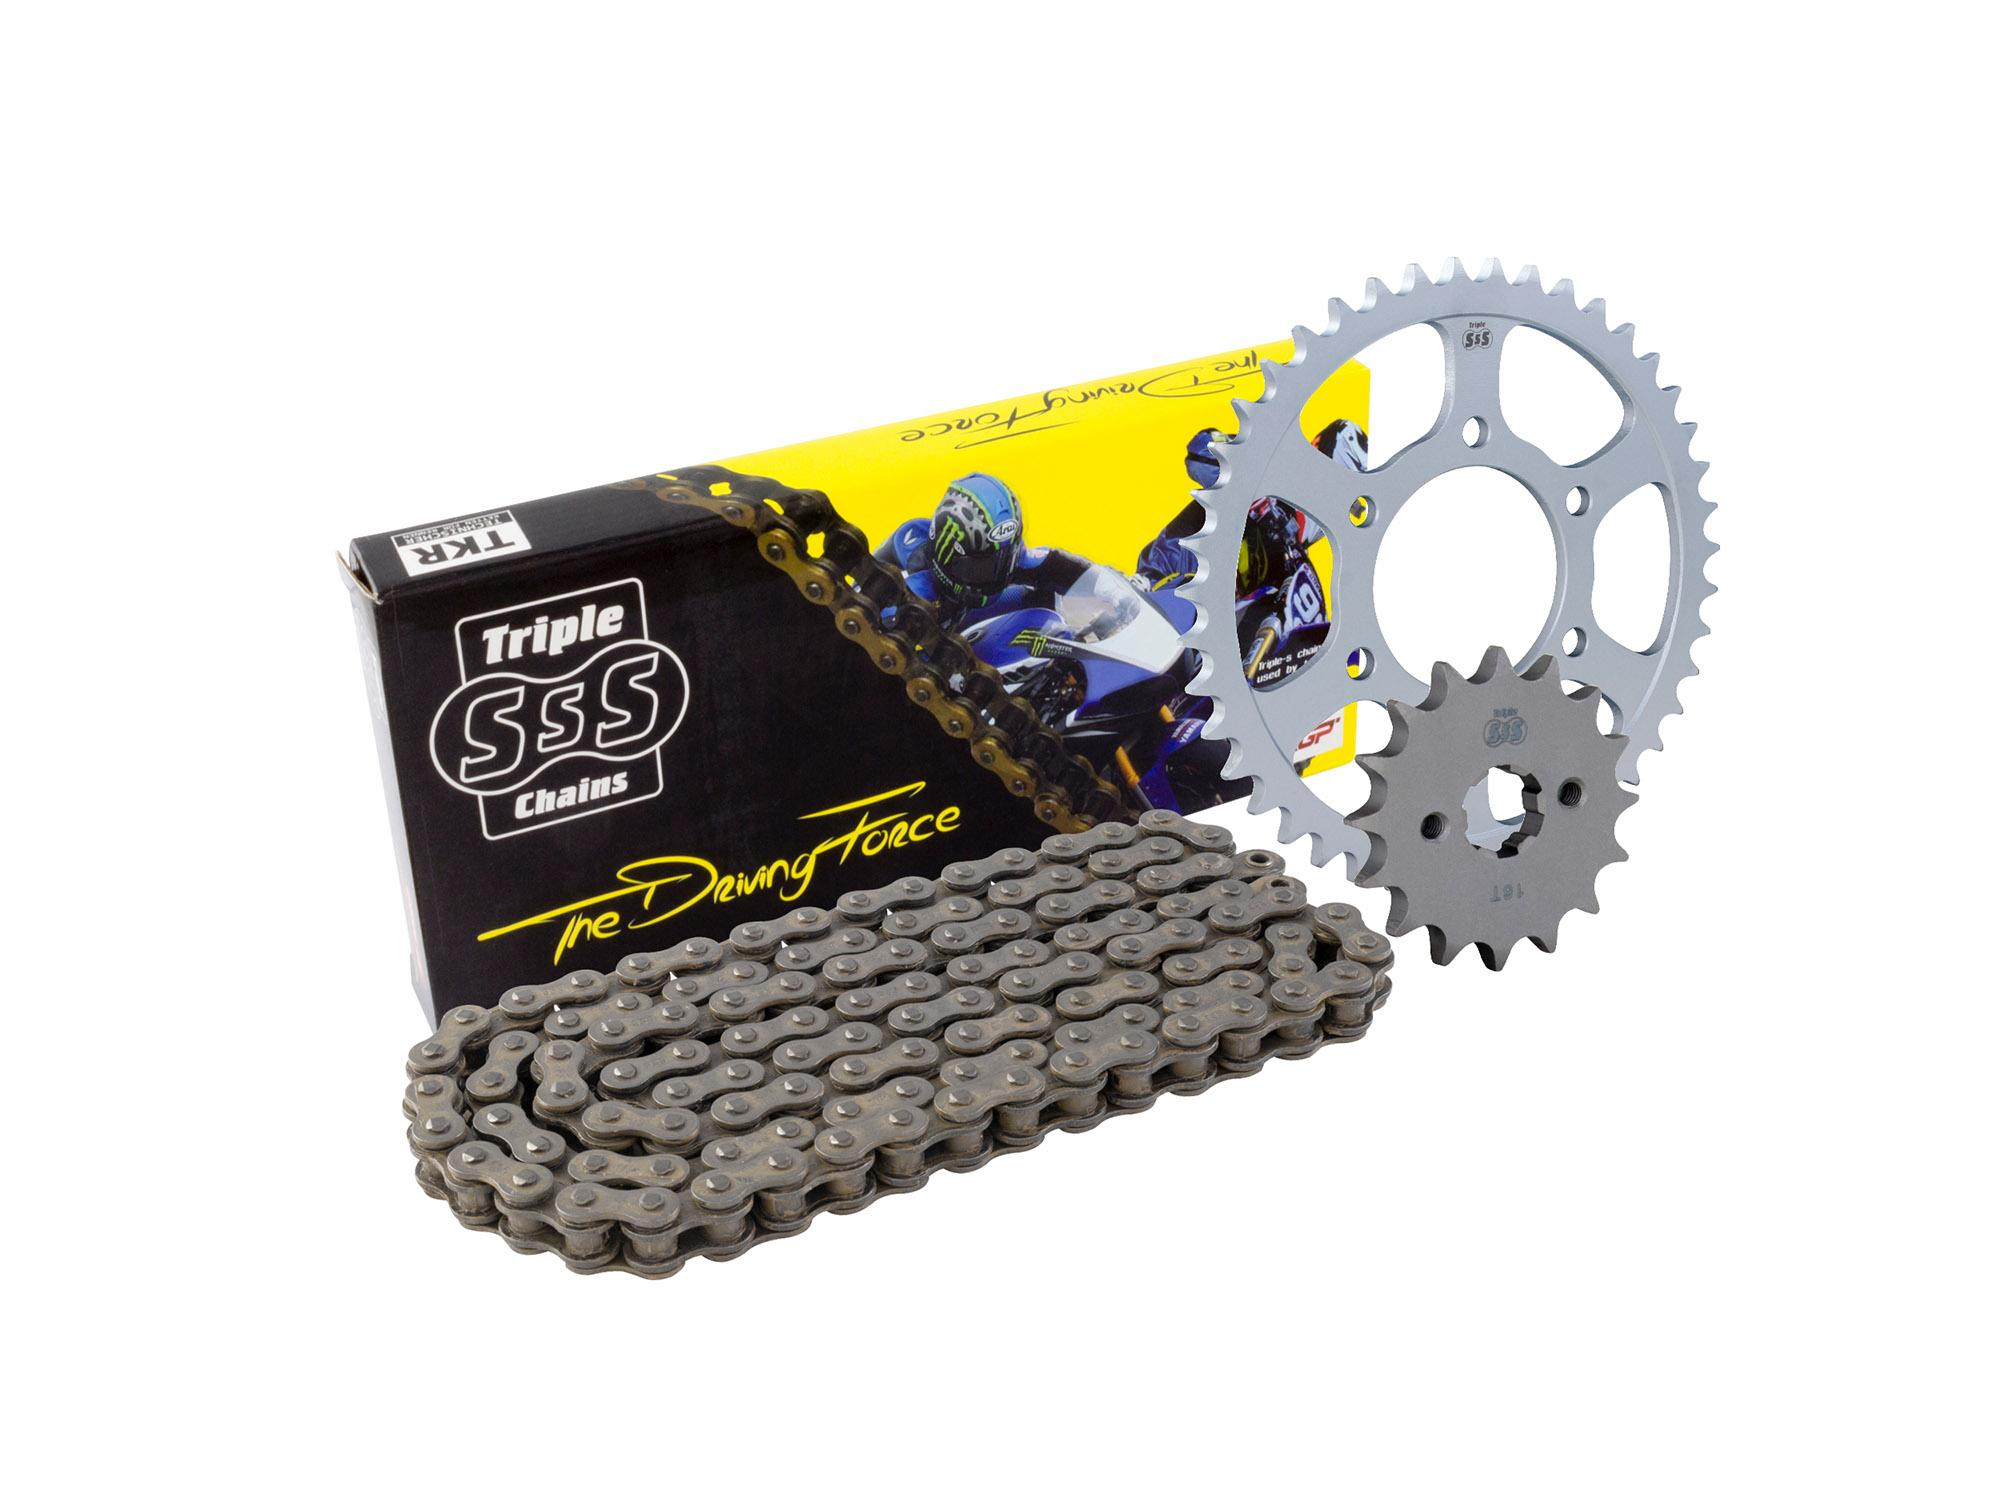 Kawasaki EX250R Ninja K8F-KAF 08-10 Chain & Sprocket Kit: 14T Front, 43T Rear, HD O-Ring Black Chain 520H 106Link